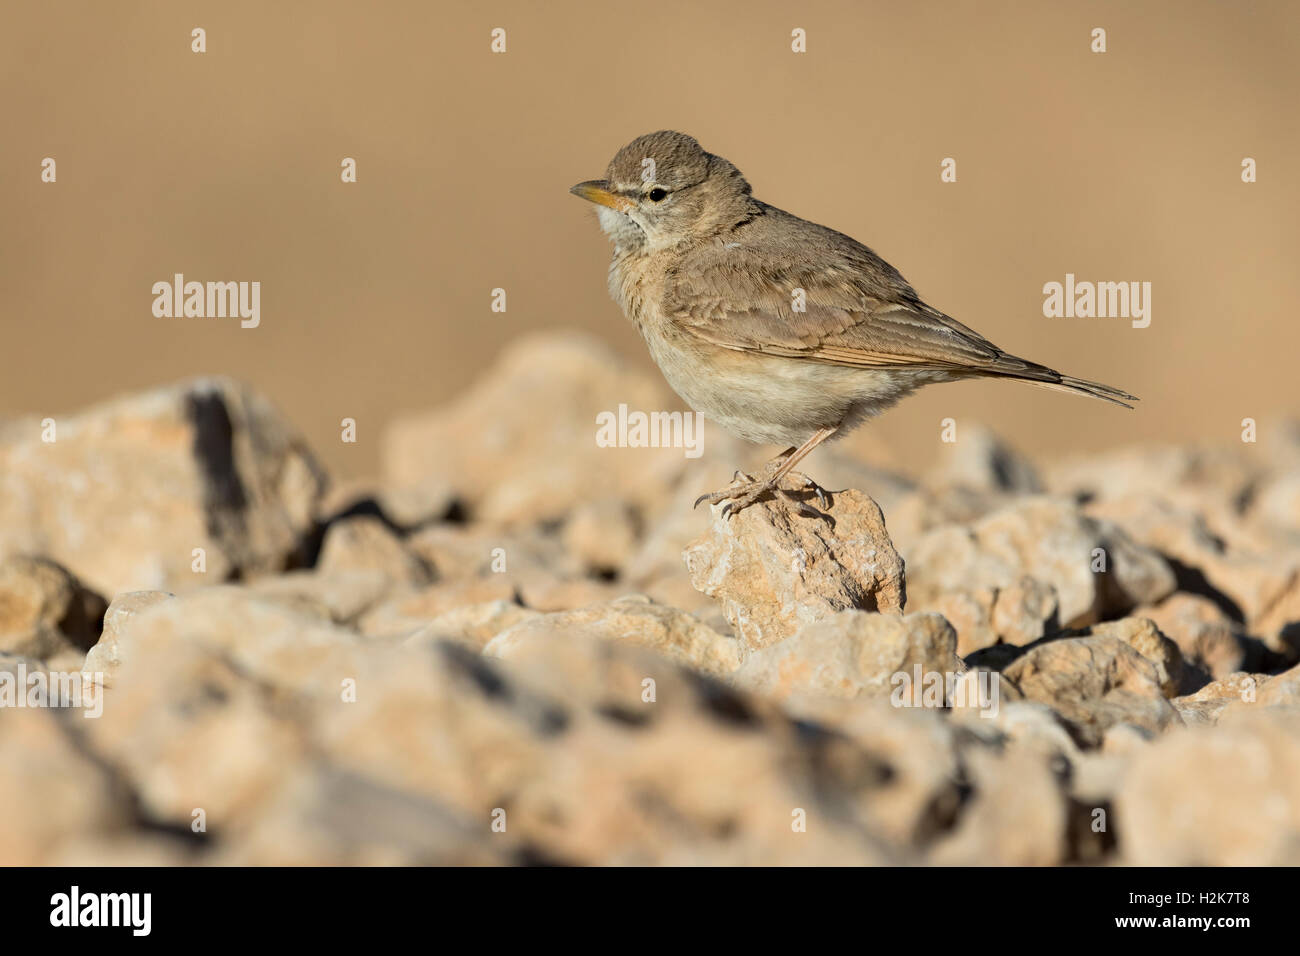 SIngle Desert Lark Ammomanes deserti perched on rocks in Eilat, Israel - Stock Image